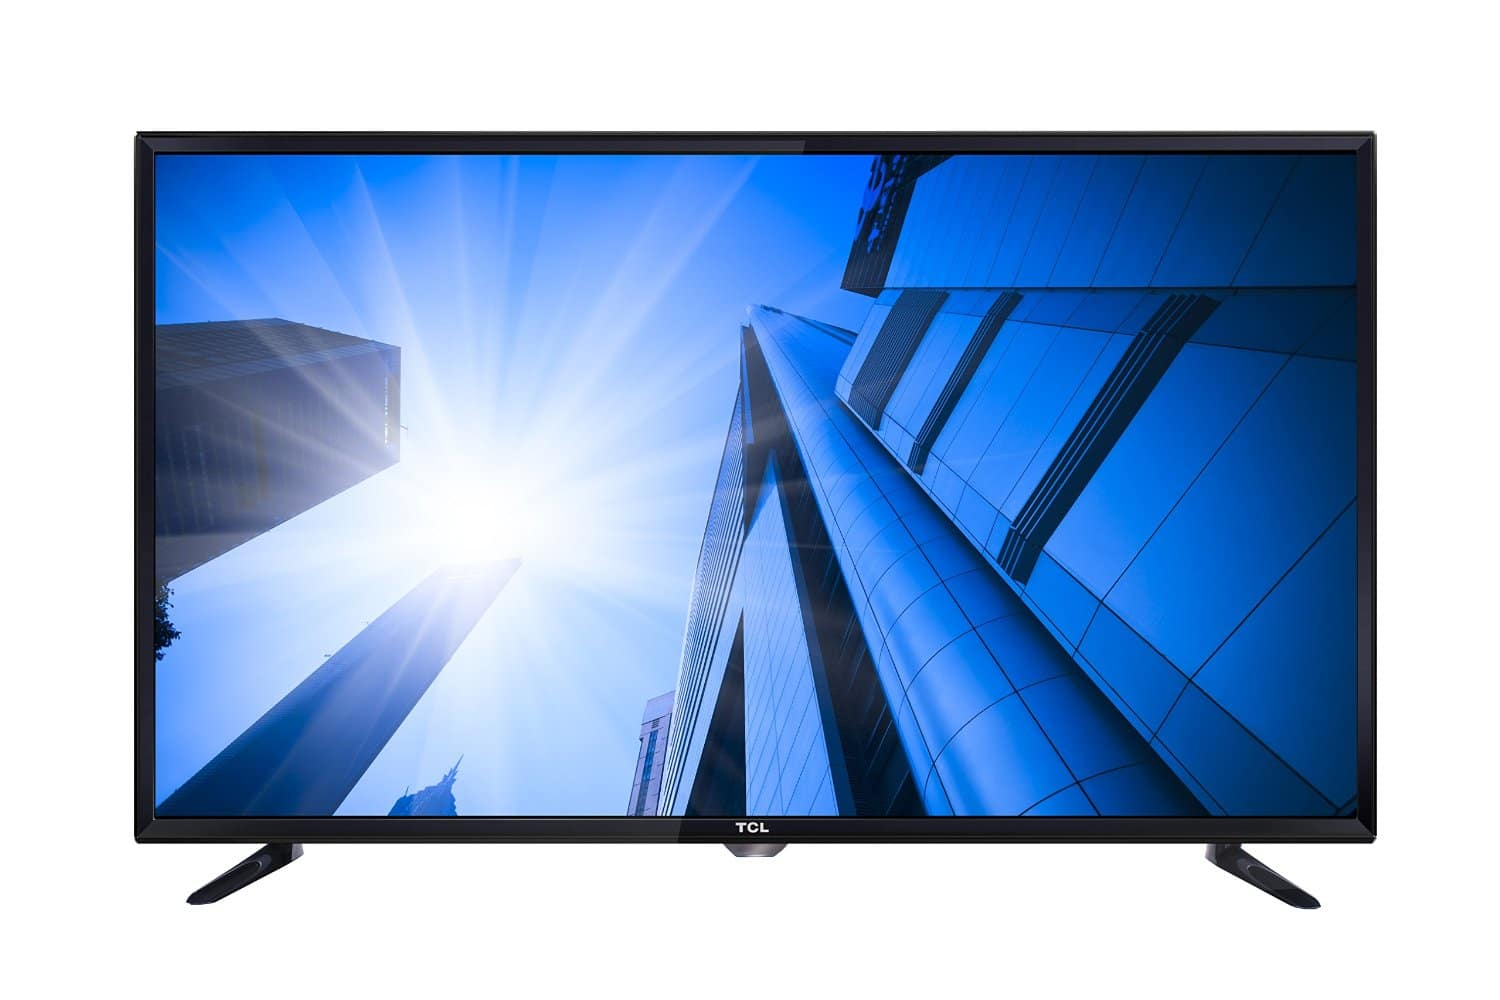 Amazon Prime: TCL 40FD2700 40-Inch 1080p LED TV $140